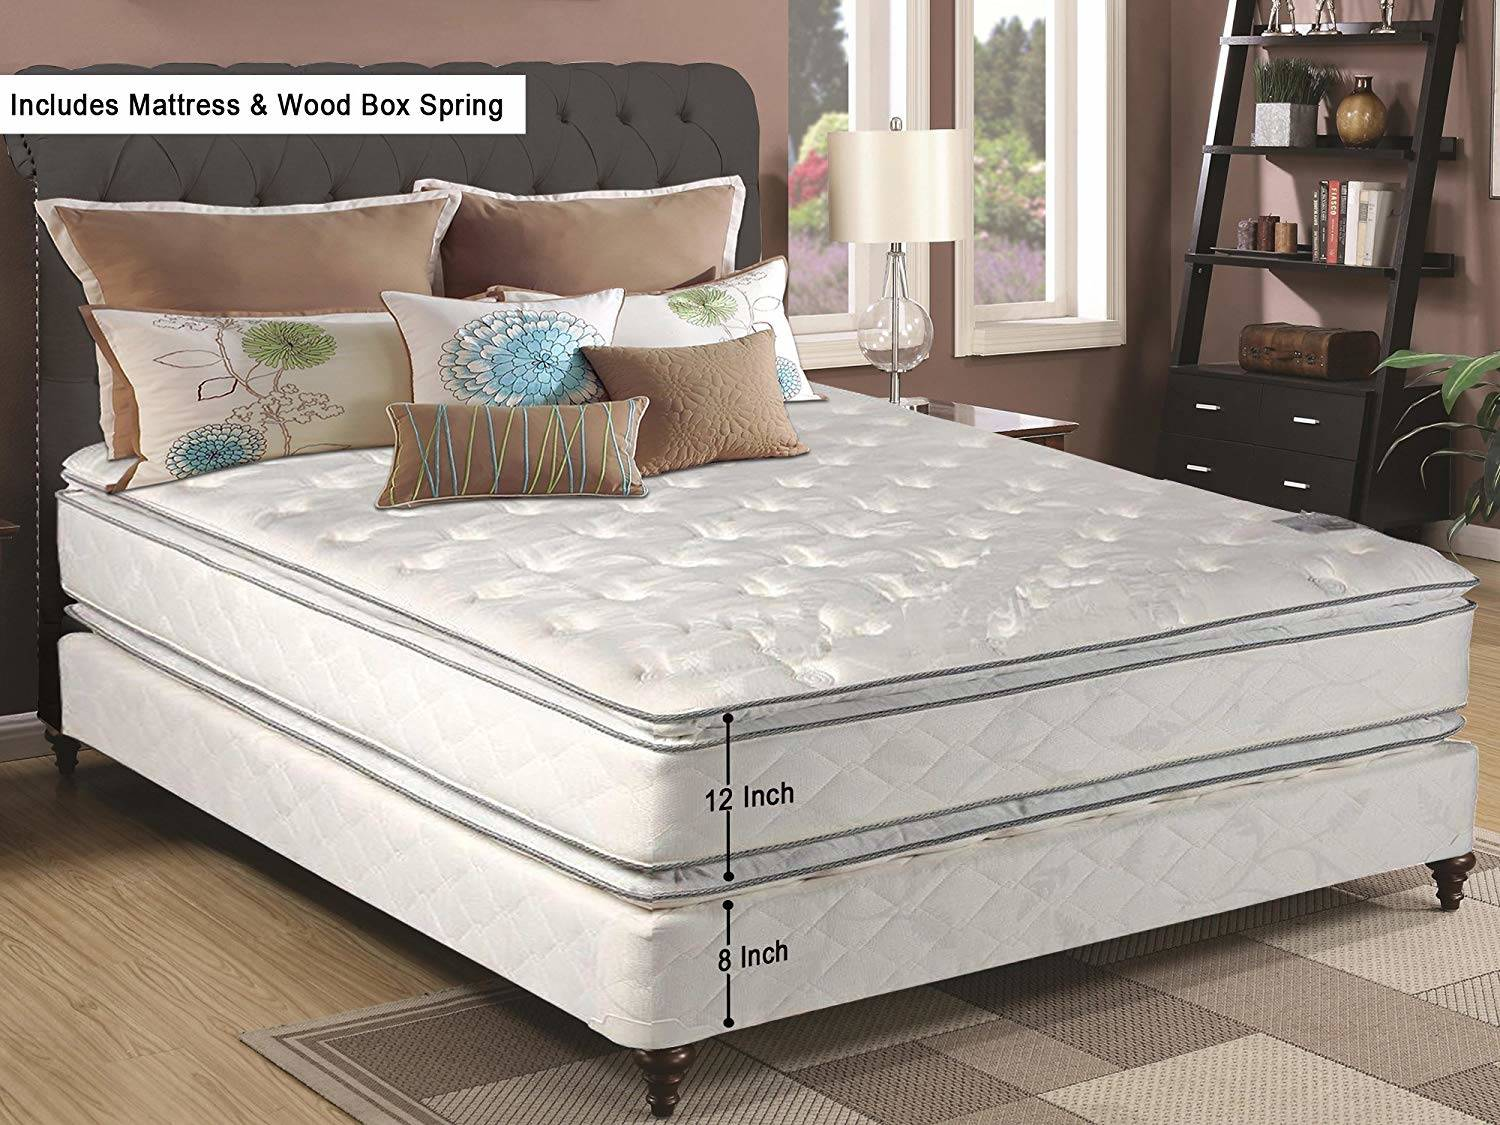 A Comparison Double Sided Mattress Vs One Sided The Sleep Judge